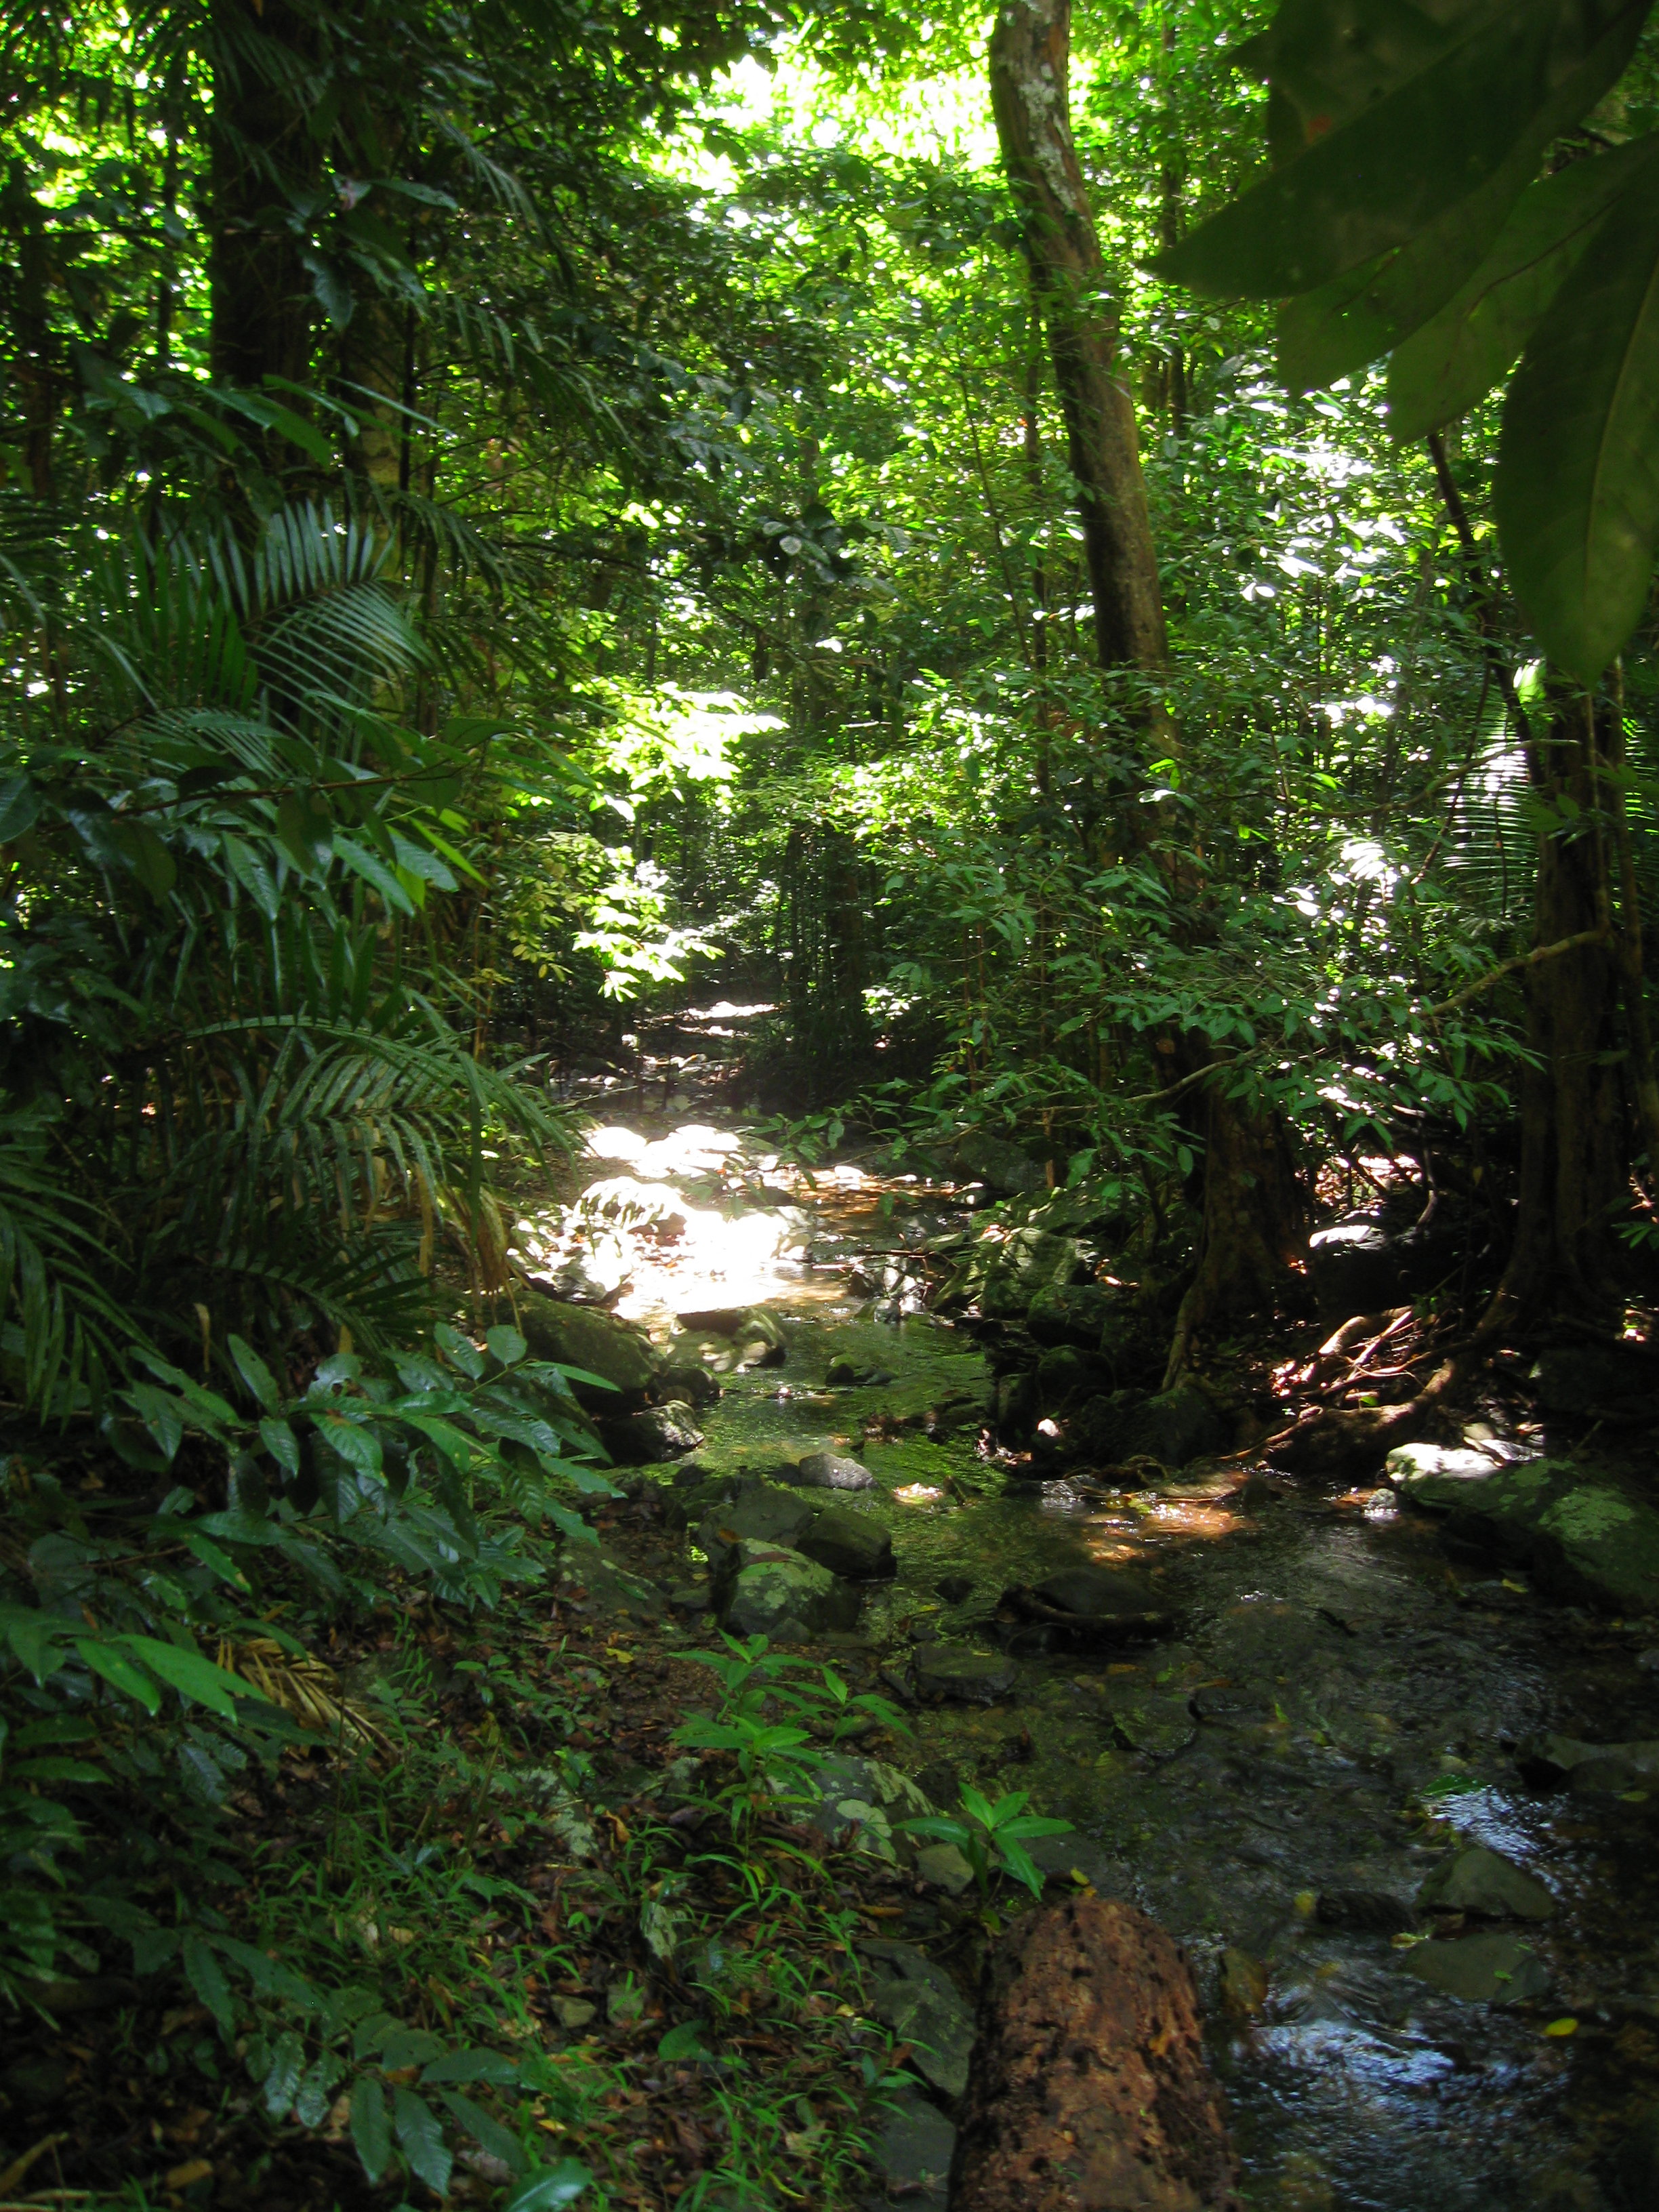 Daintree Australia  city images : Daintree Rainforest 2 Wikipedia, the free encyclopedia